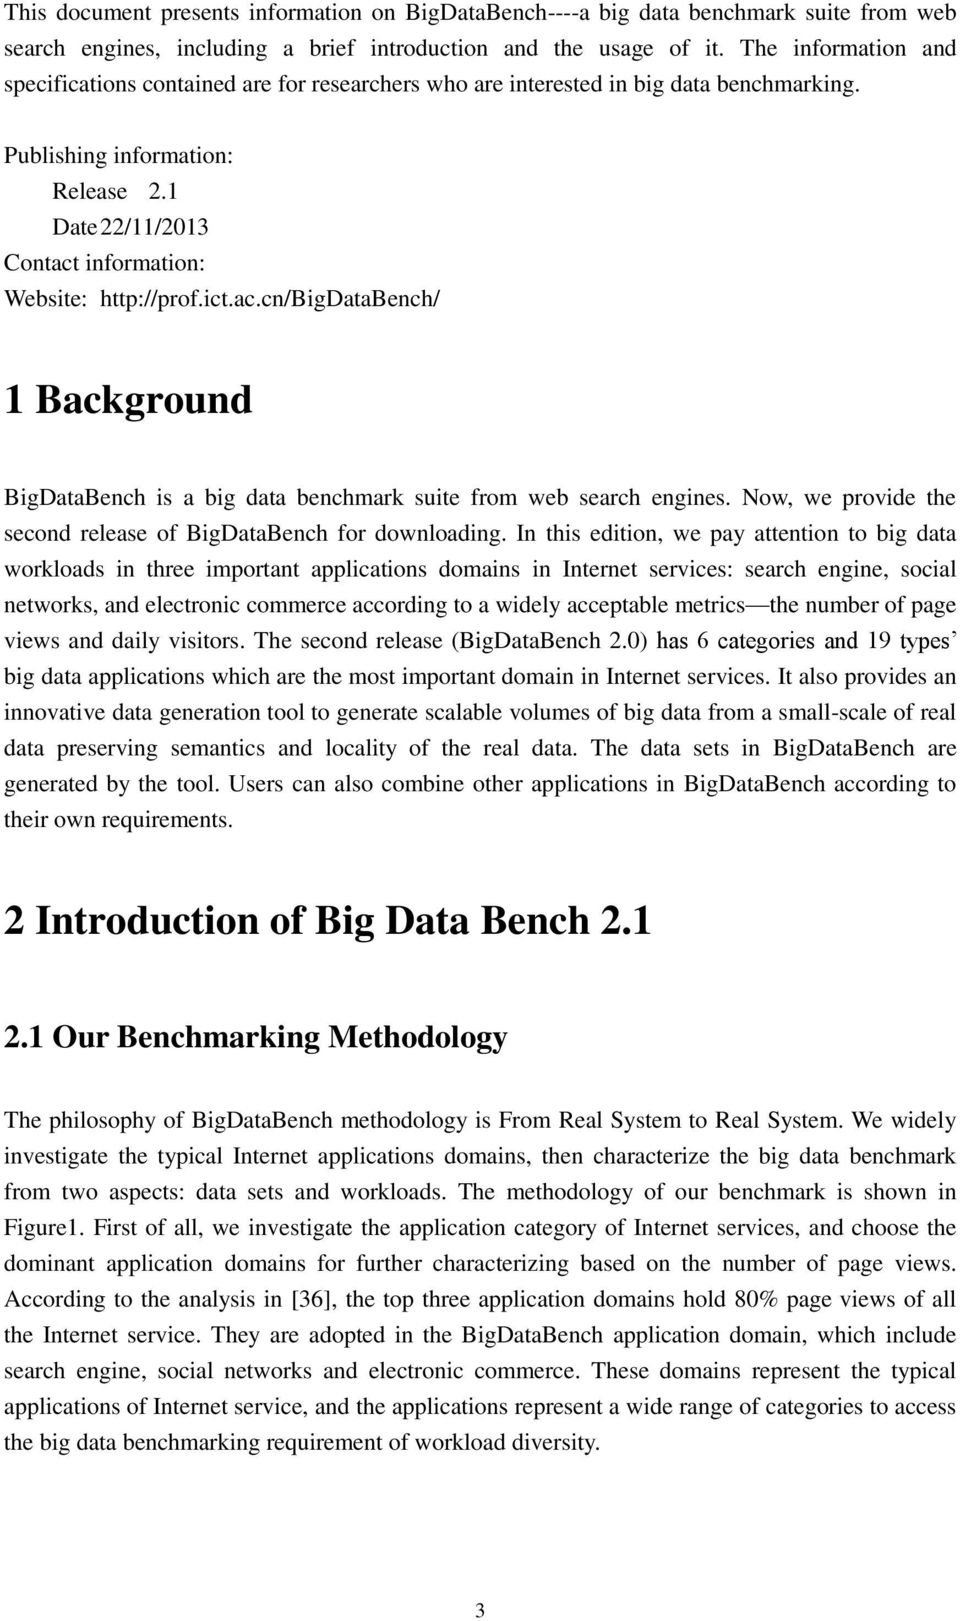 1 Date 22/11/2013 Contact information: Website: http://prof.ict.ac.cn/bigdatabench/ 1 Background BigDataBench is a big data benchmark suite from web search engines.